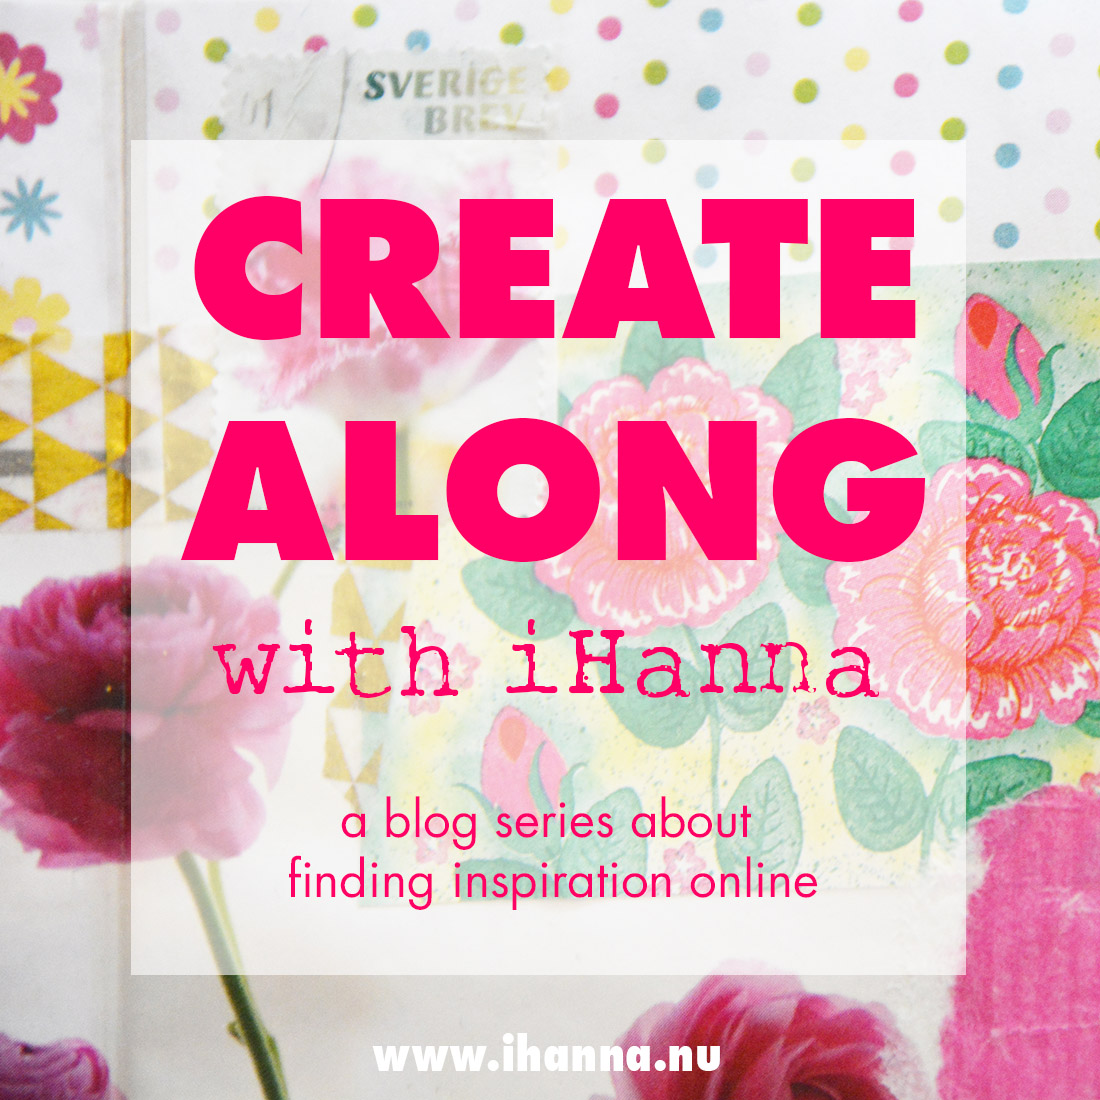 Create along with iHanna - a blog series about finding inspiration online to create along with